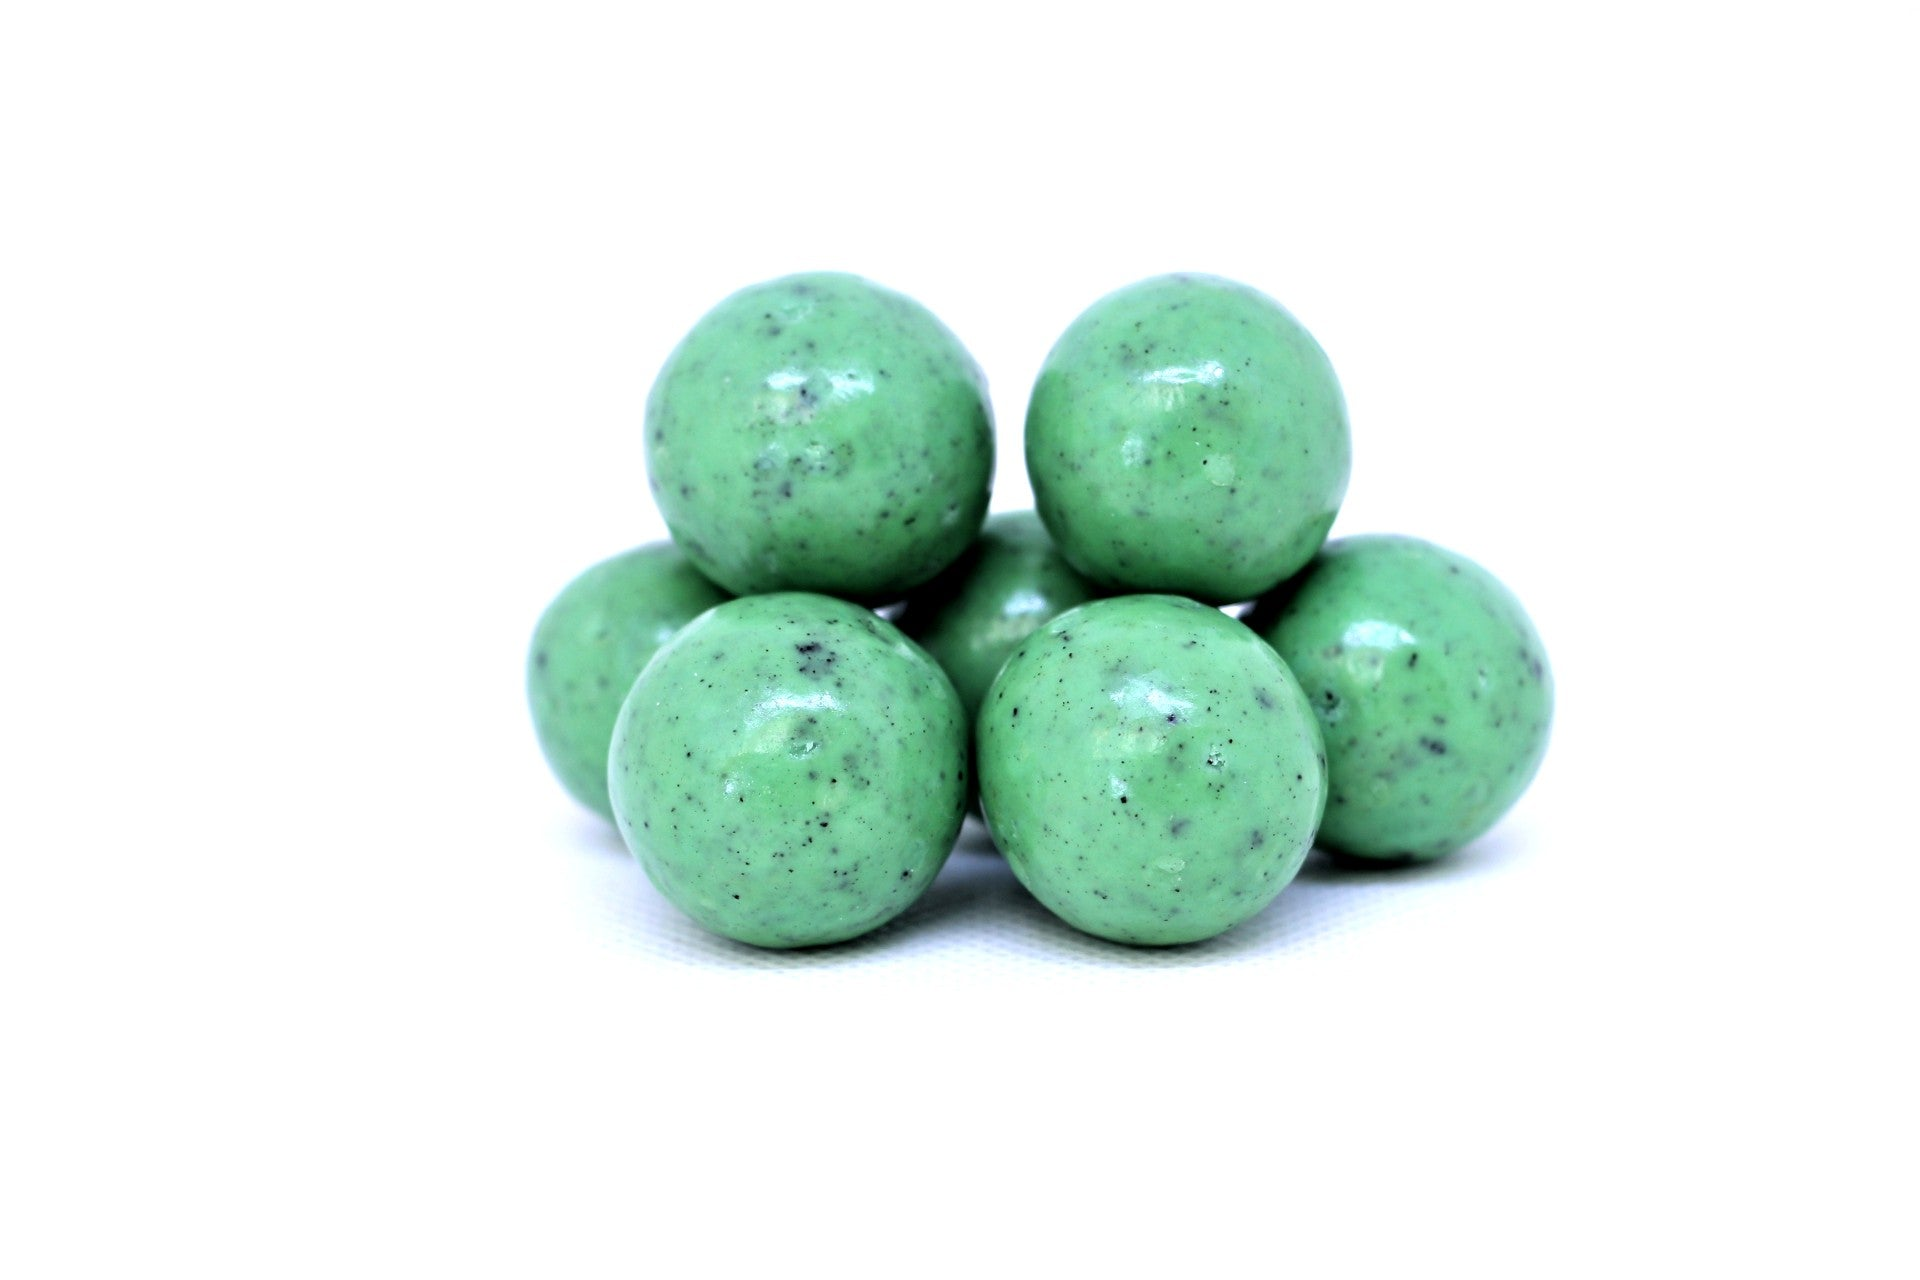 Mint Cookie Malted Milk Balls